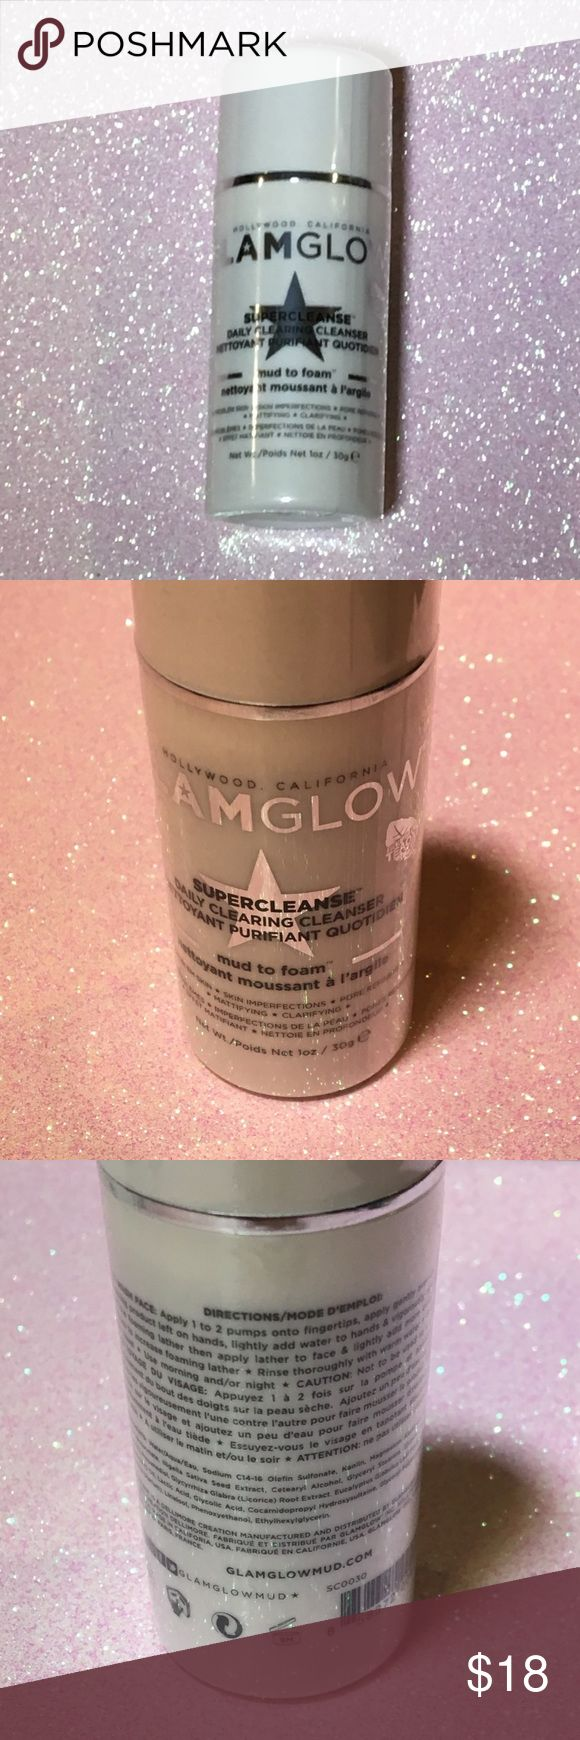 Glam Glow Super Cleanse Facial Cleanser A 1oz size of GlamGlow's amazing Facial Cleanser! New,unopened and 100% authentic. GLAMGLOW Makeup